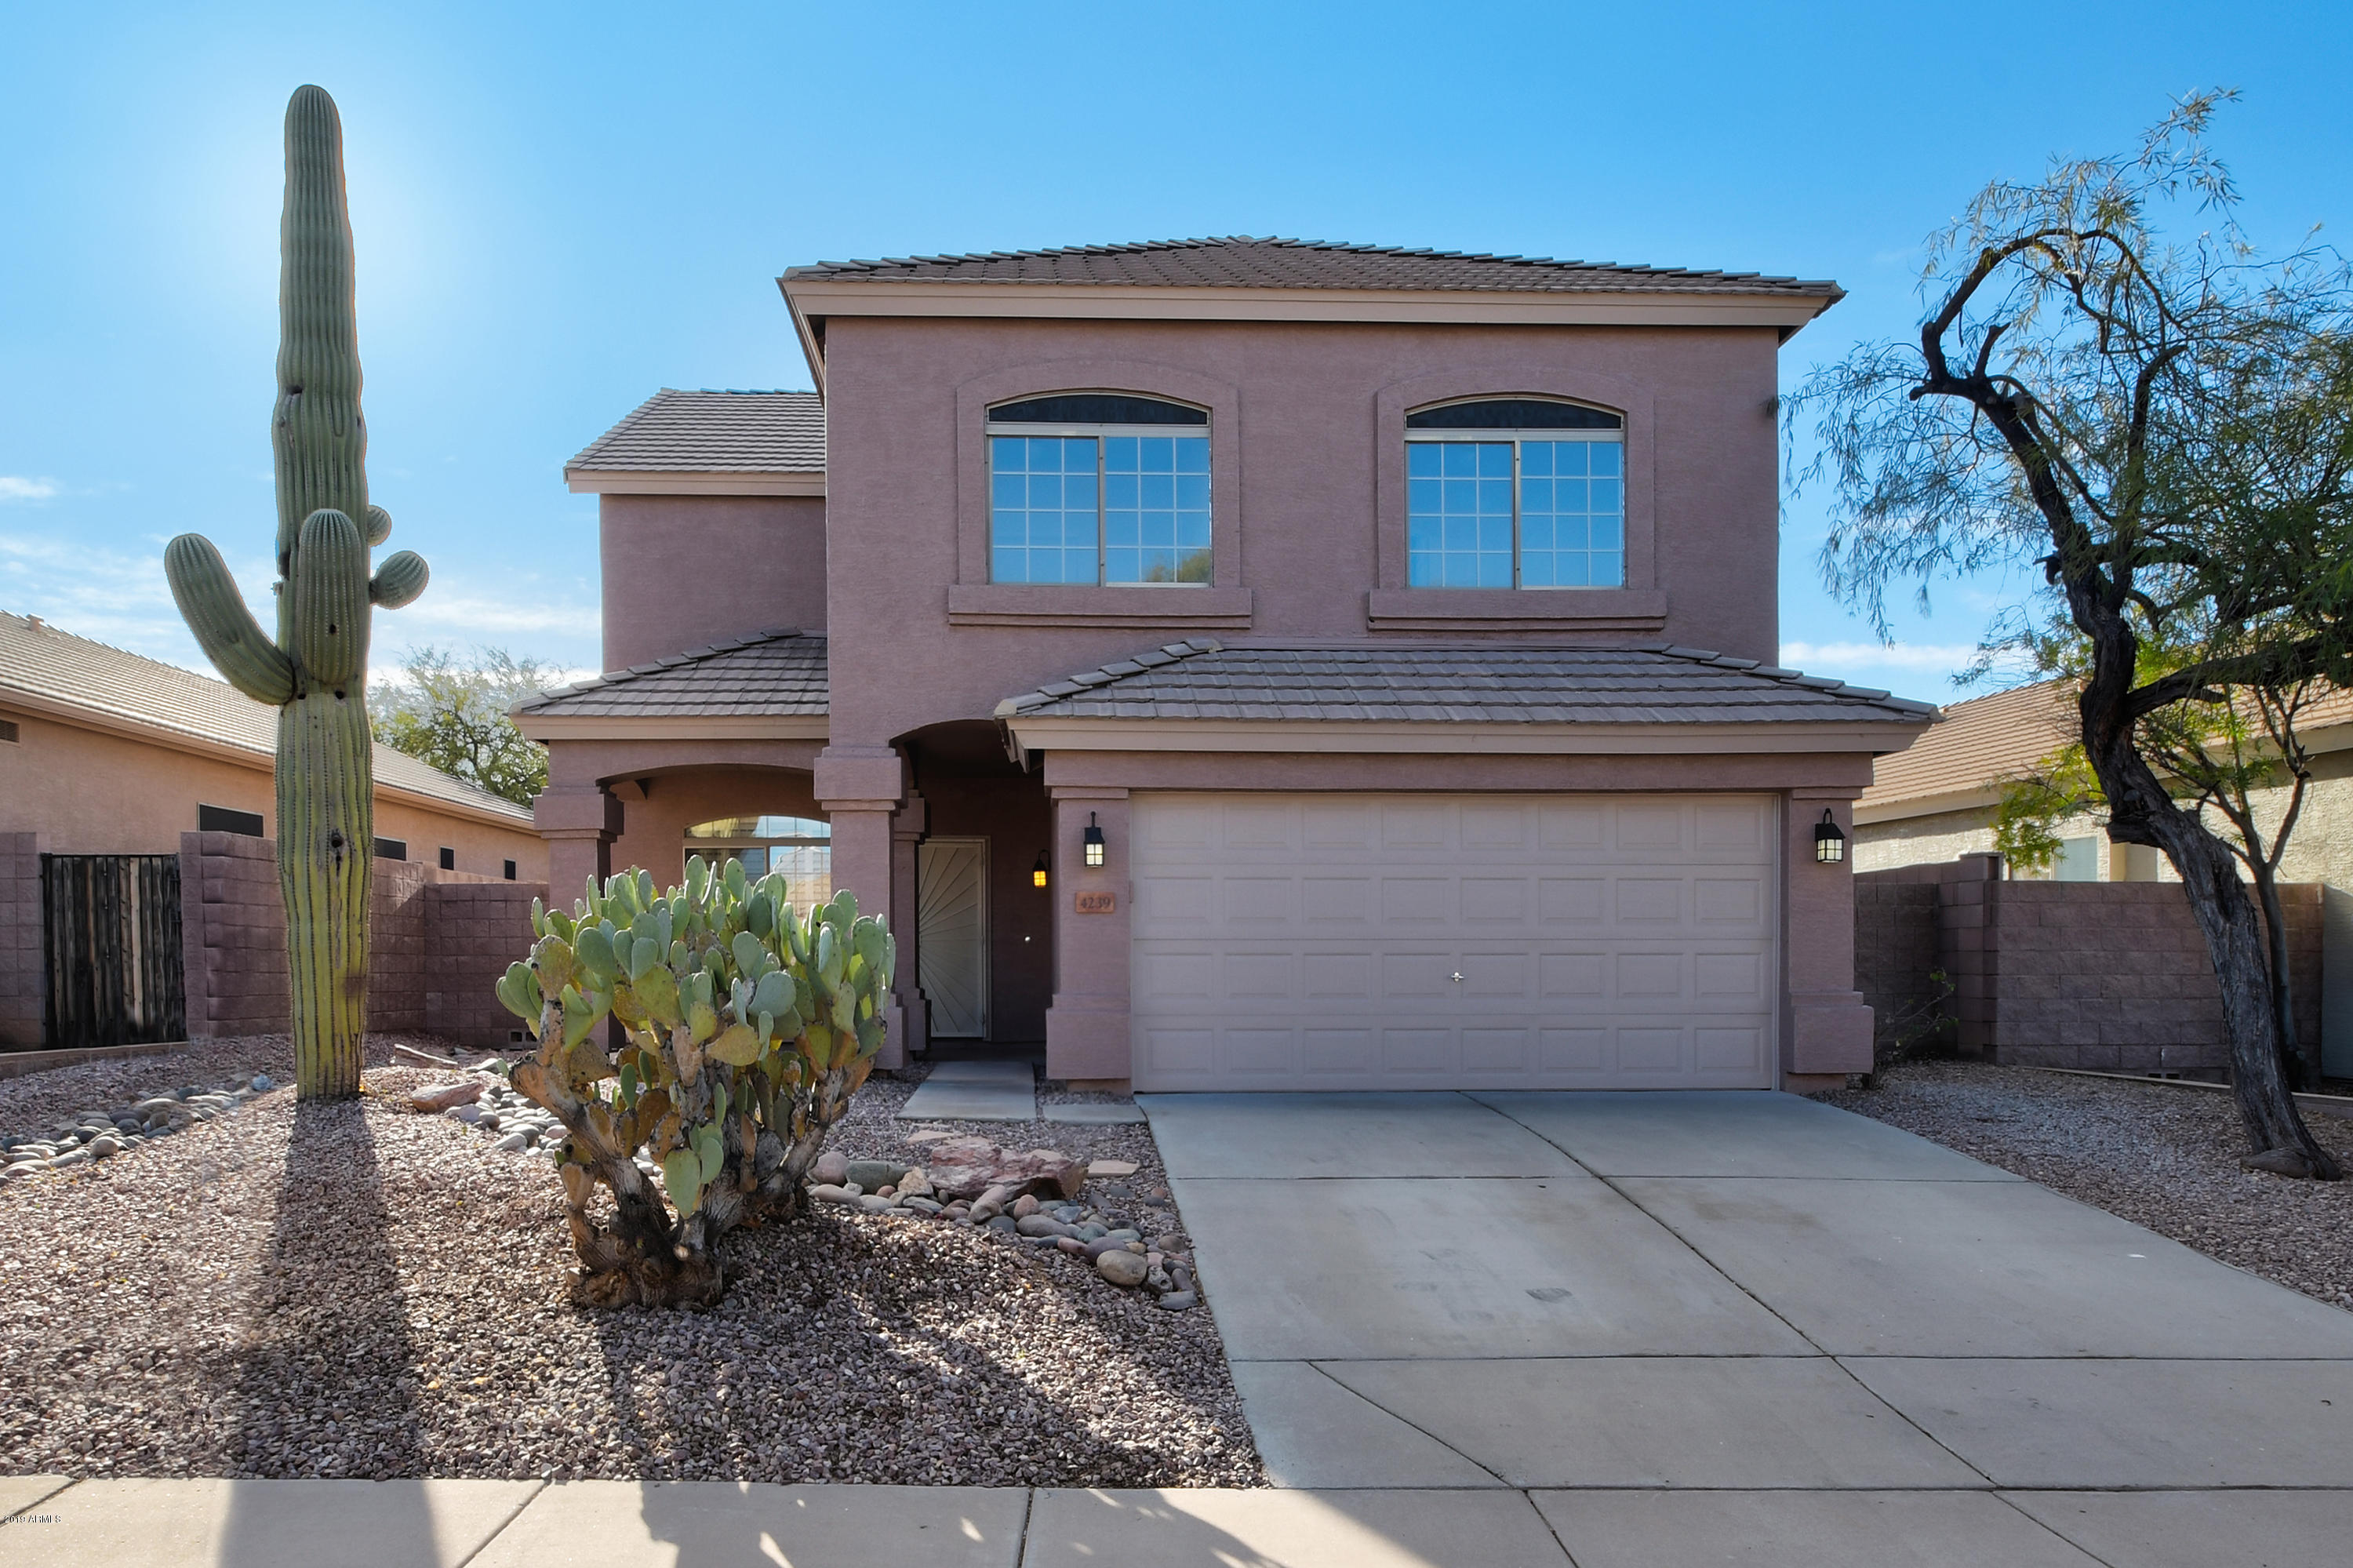 Photo of 4239 E TETHER Trail, Phoenix, AZ 85050